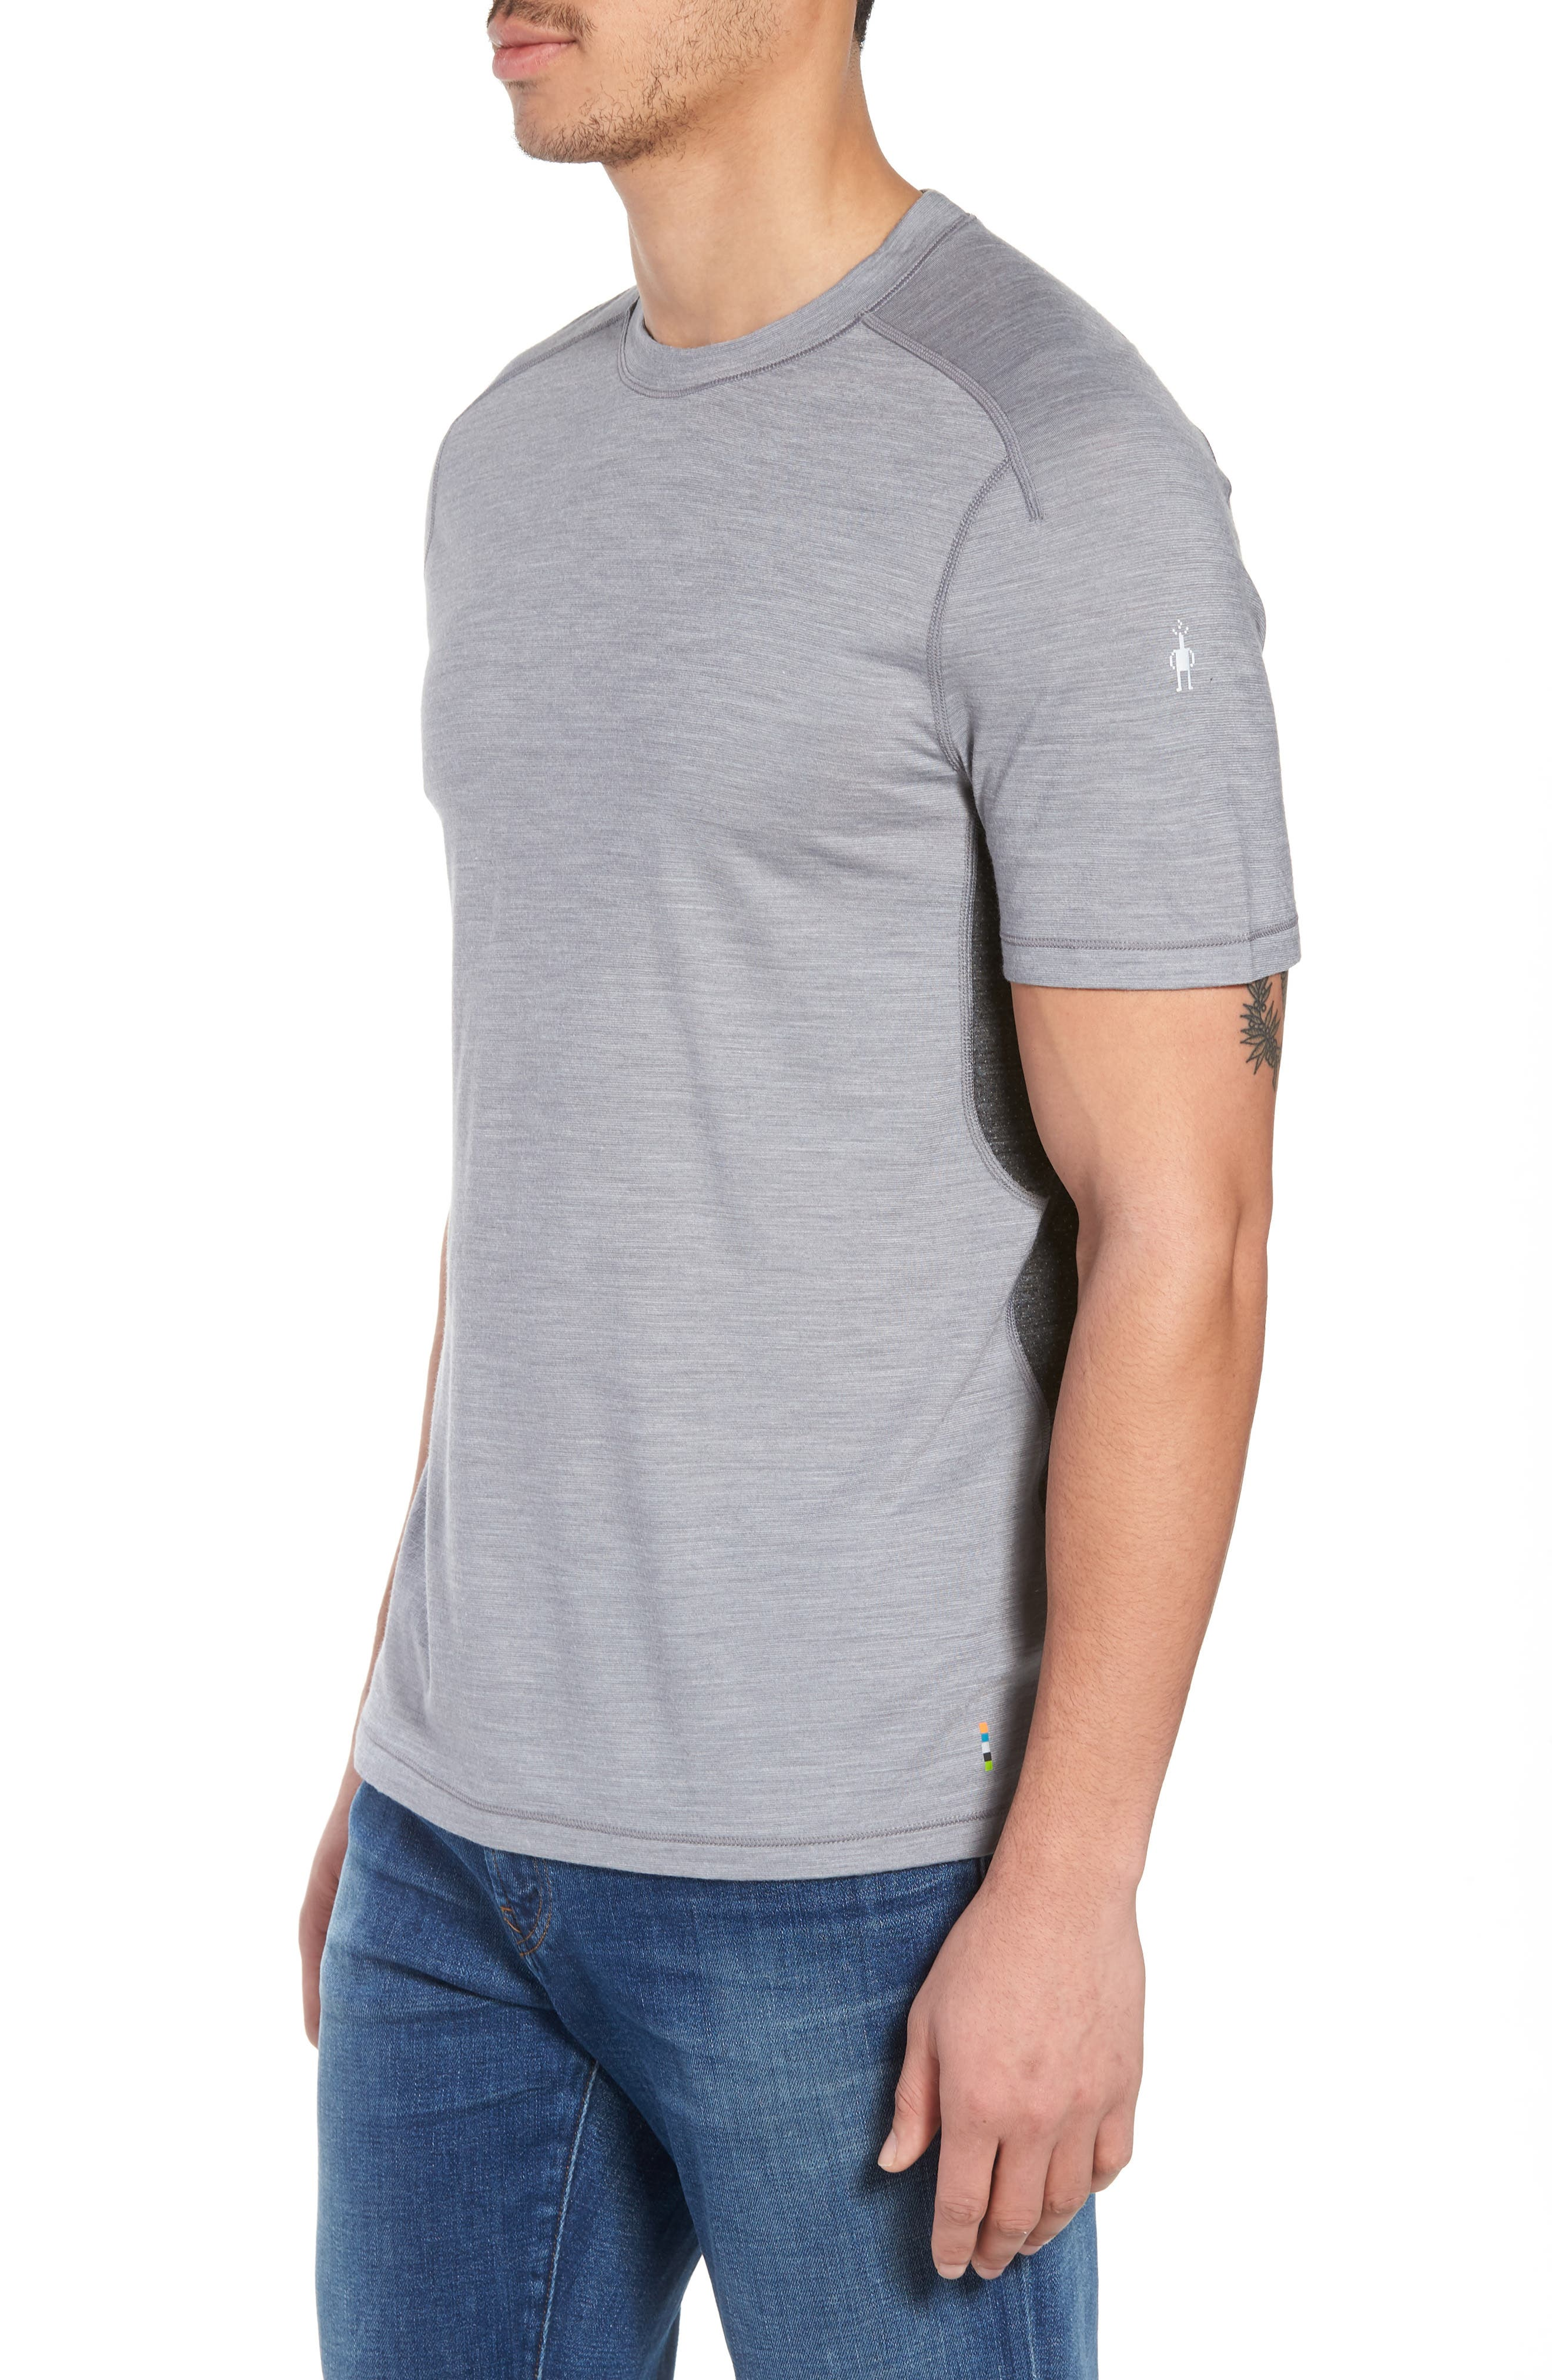 PhD<sup>®</sup> Ultra-Light T-Shirt,                             Alternate thumbnail 3, color,                             Light Gray